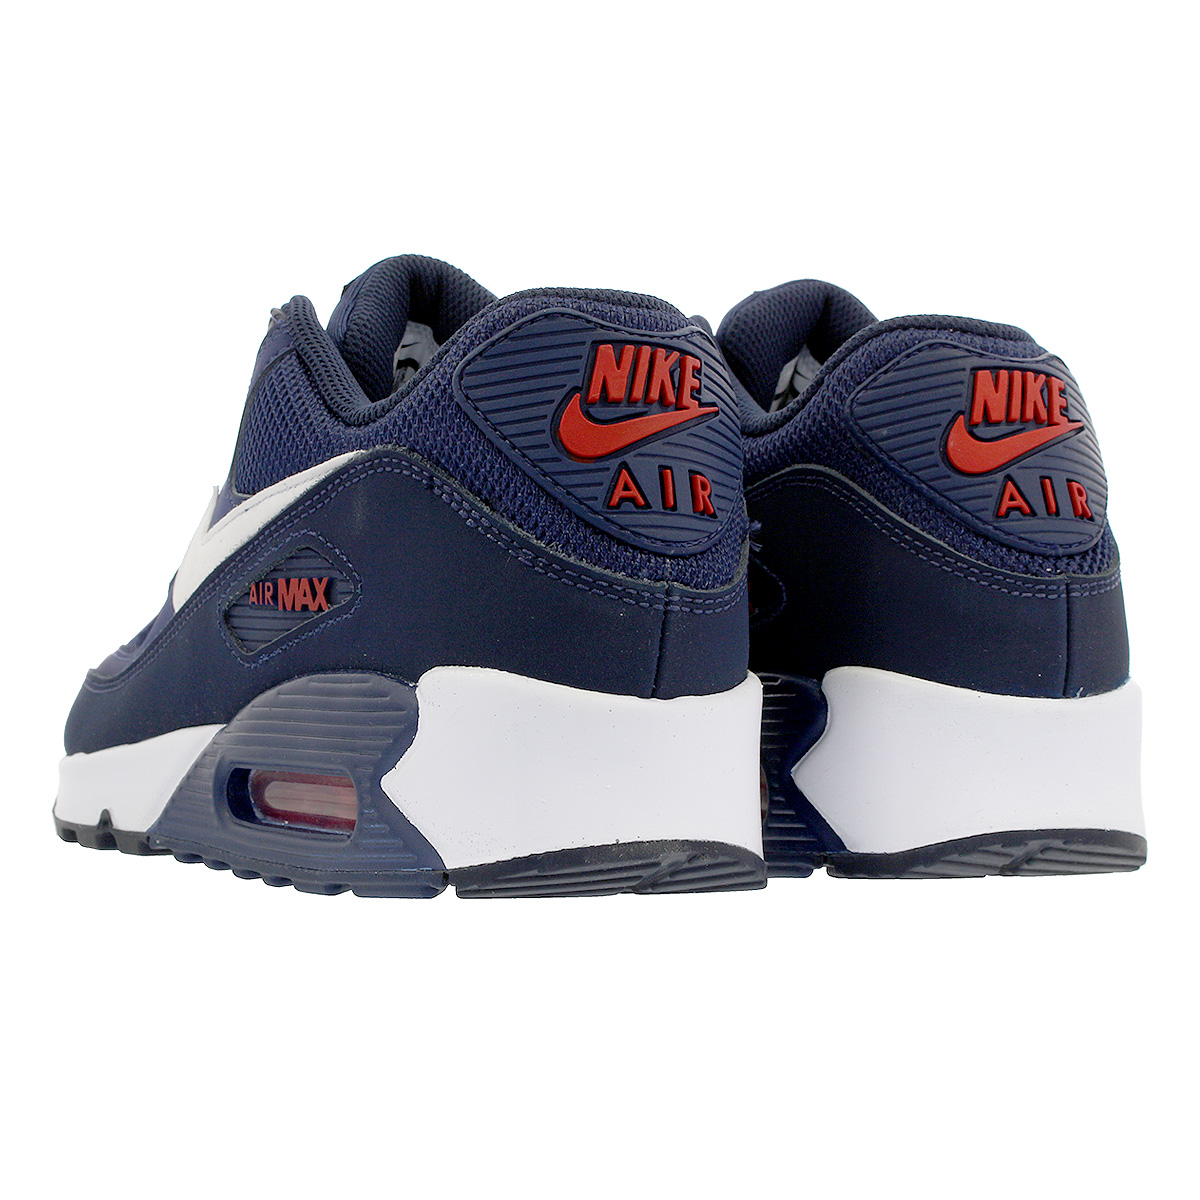 Nike Blue Air Max 90 Essential Midnight Navy White university Red for men